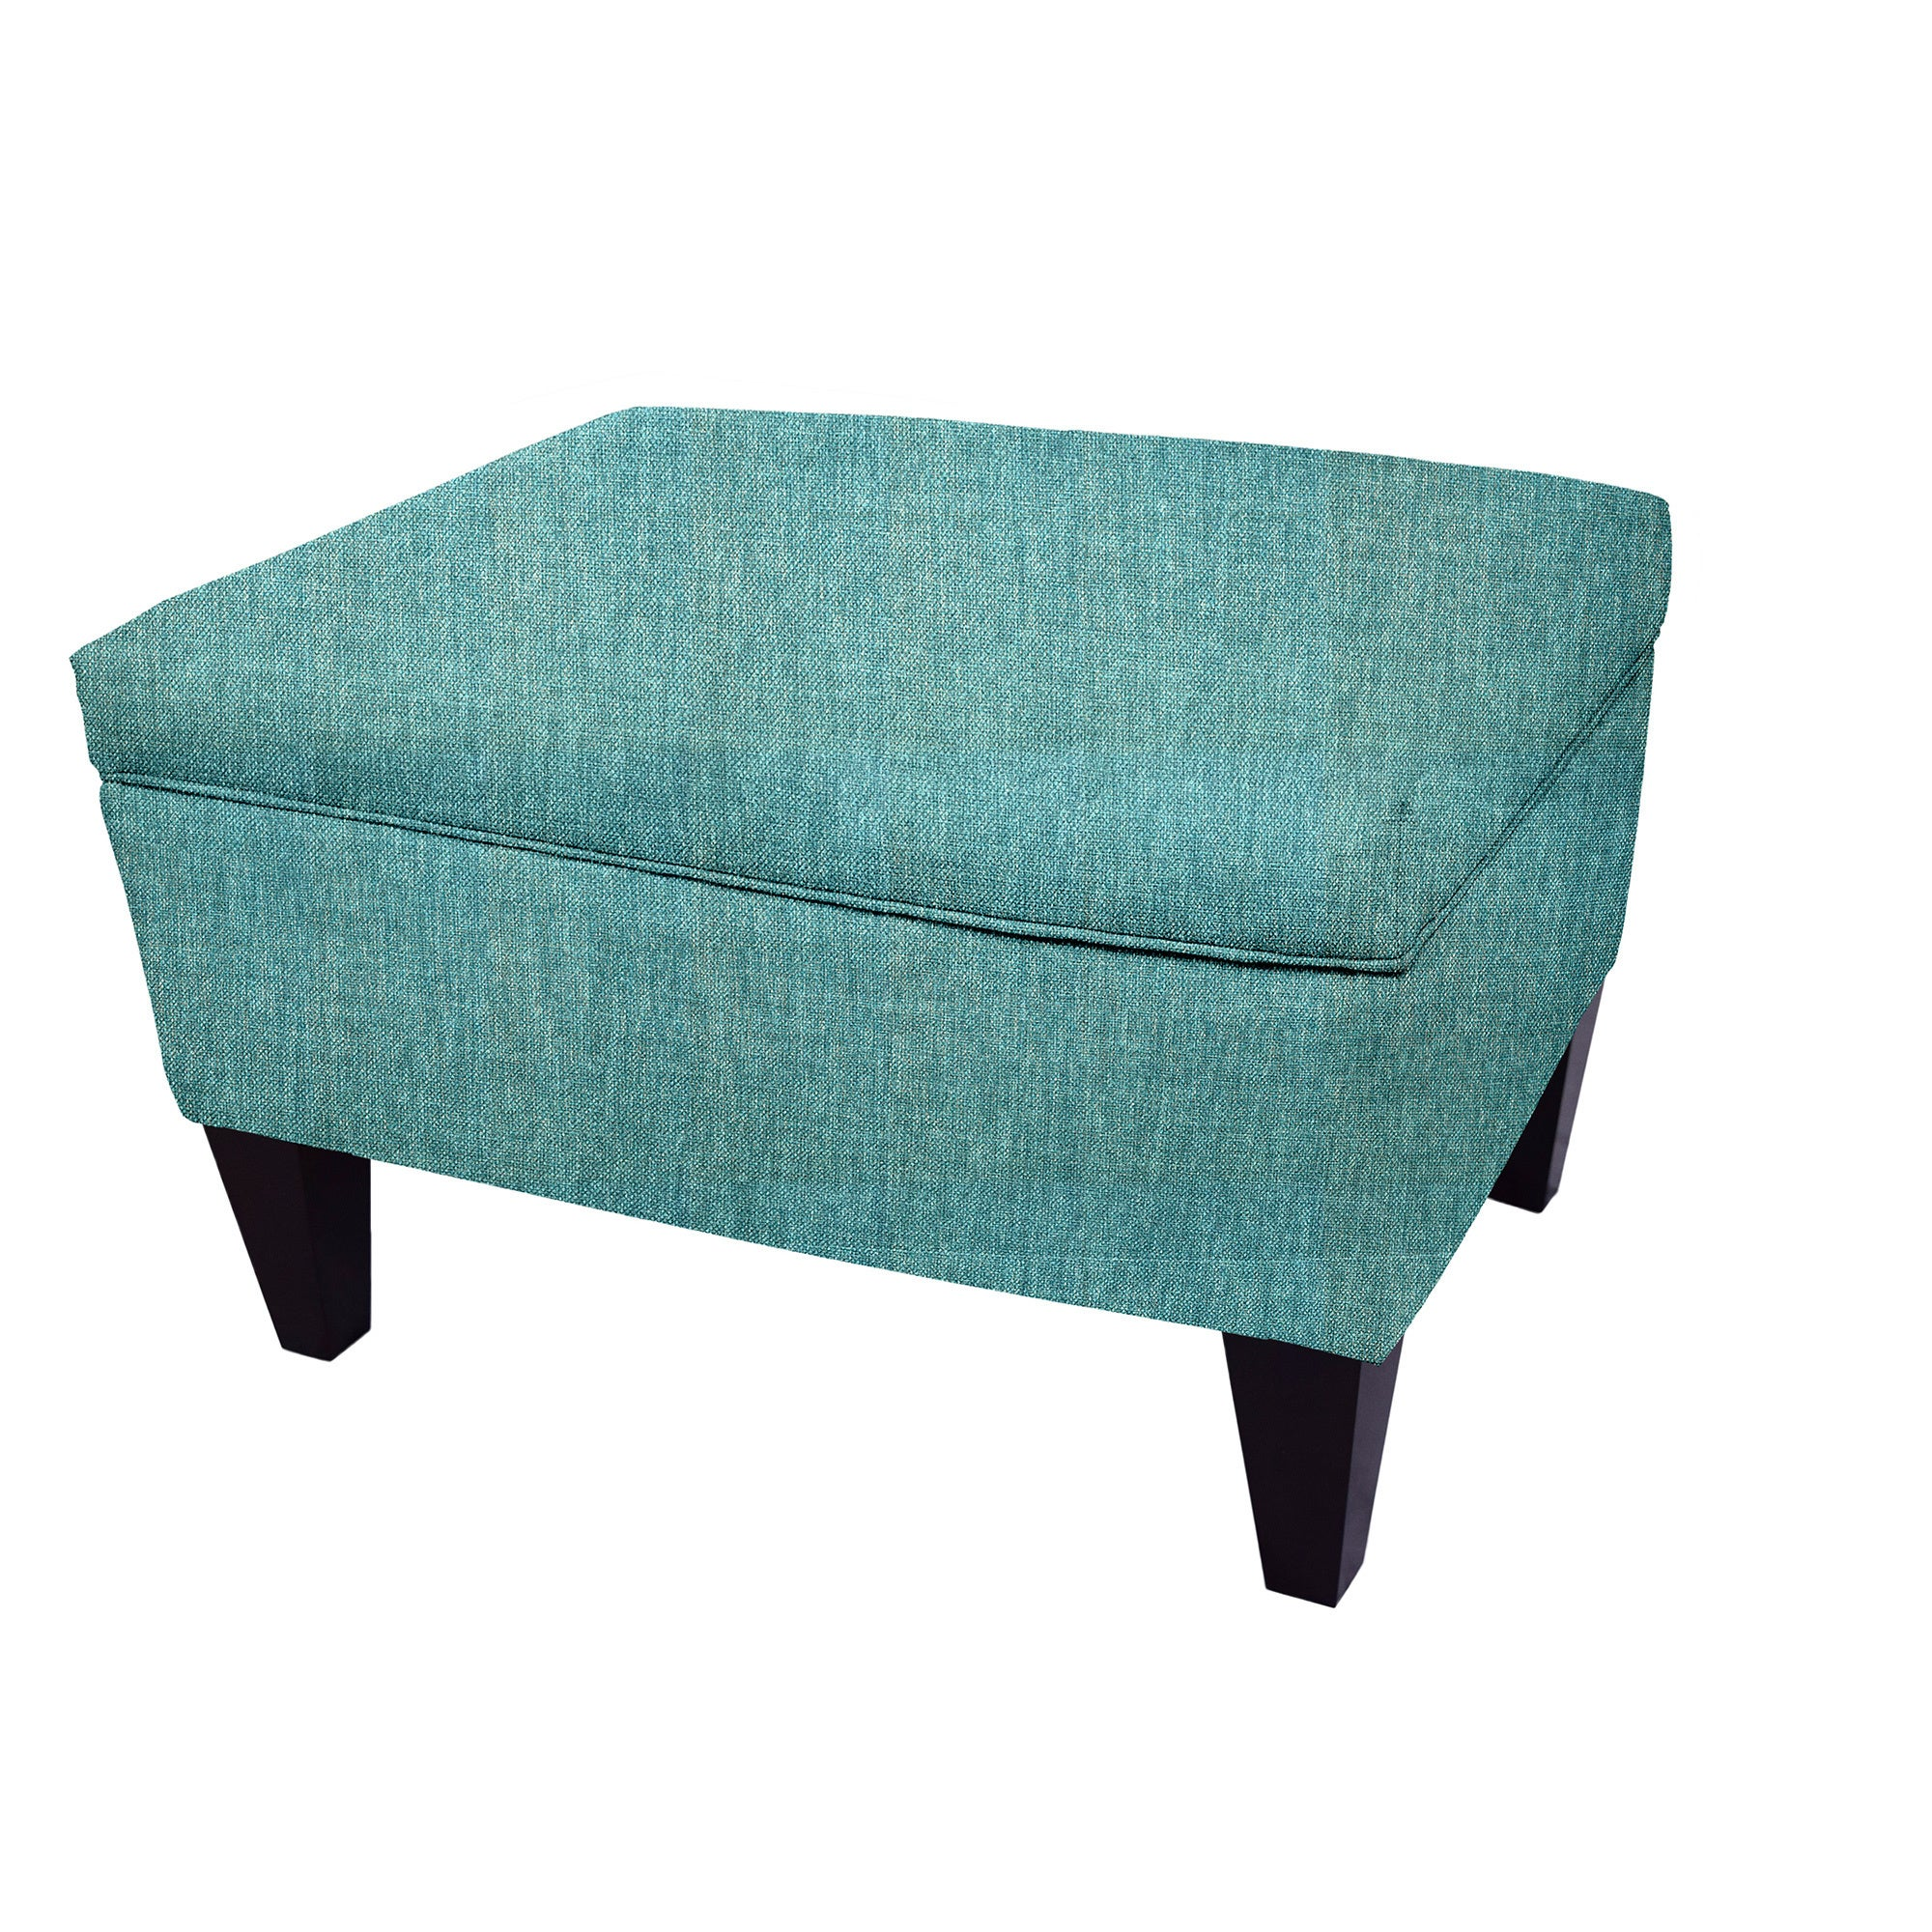 MJL Furniture BROOKLYN Wood Polyester-upholstered Storage Ottoman ...